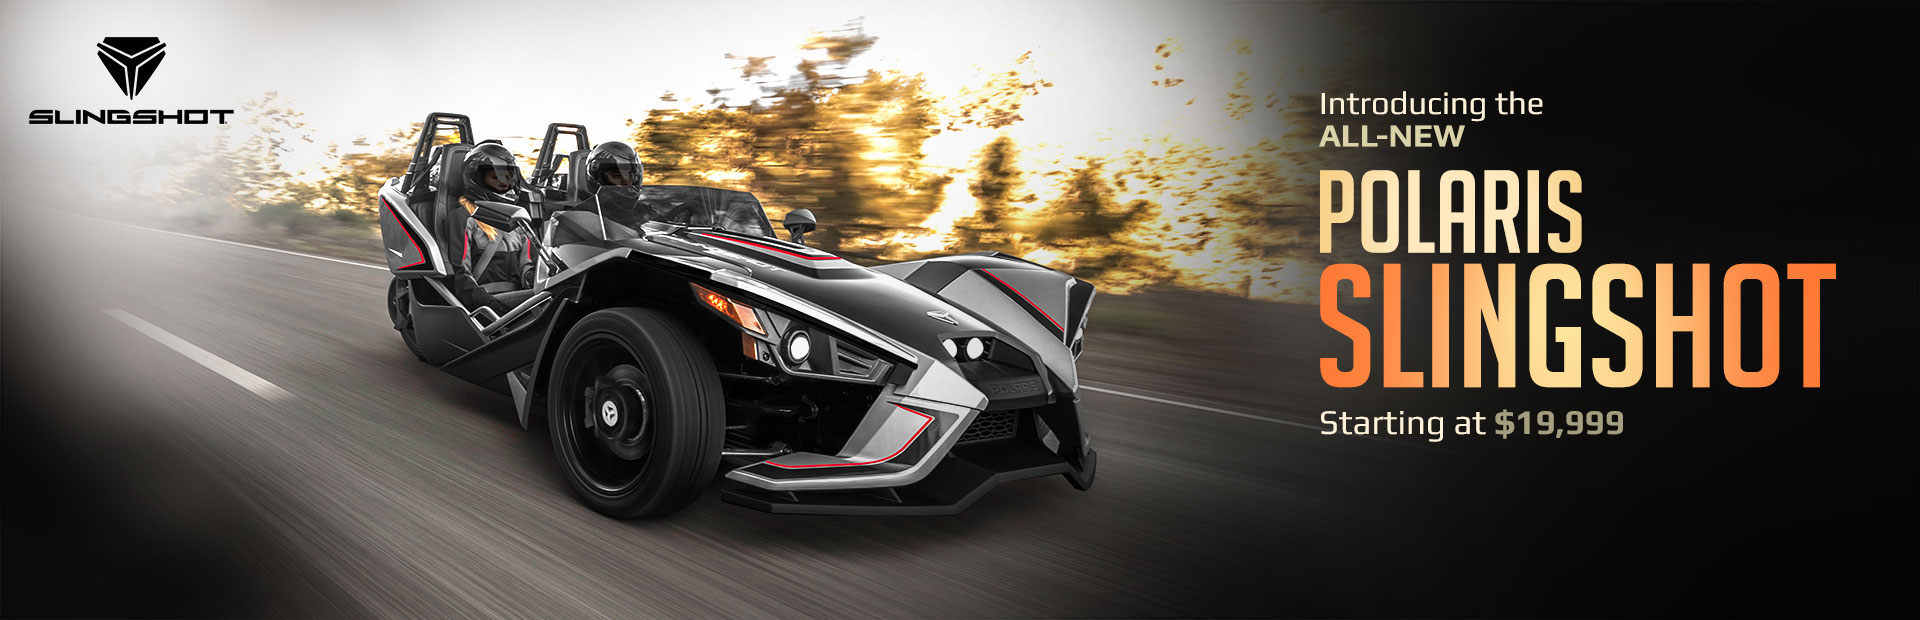 Introducing the All-New Polaris Slingshot: Click here to view the models.